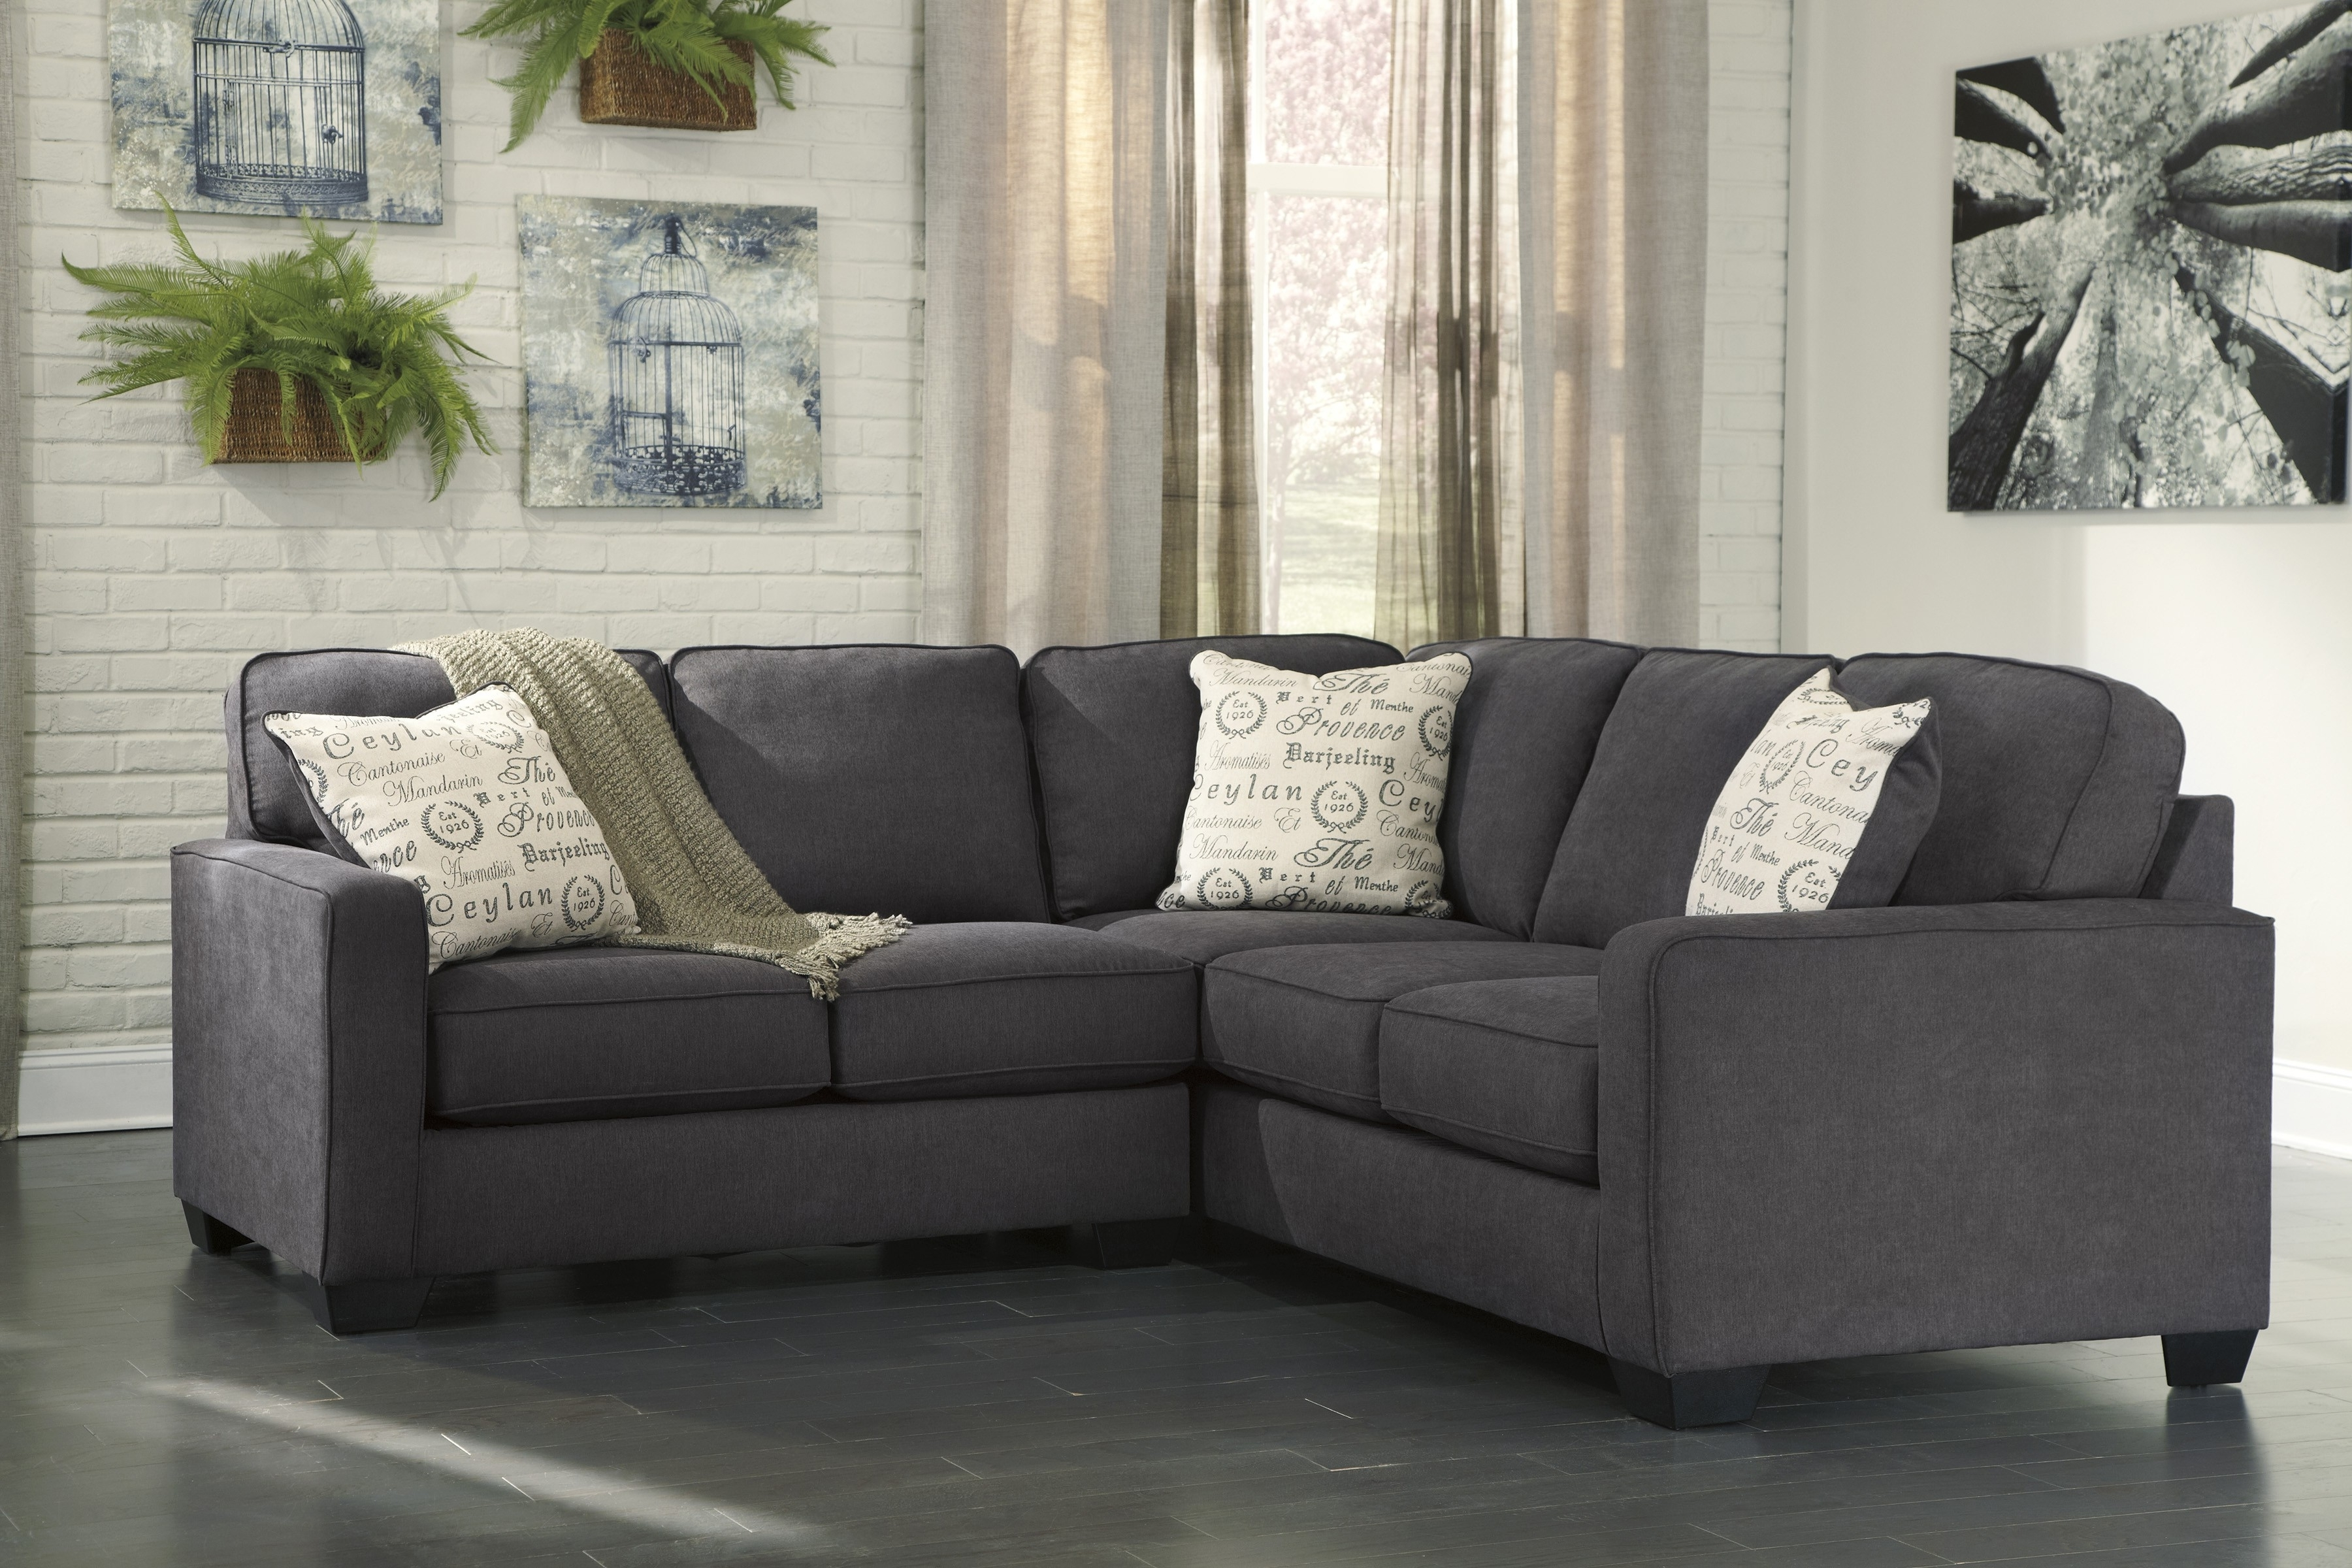 2 Piece Sectional Sofas With Chaise In Widely Used Alenya Charcoal 2 Piece Sectional Sofa For $ (View 1 of 15)